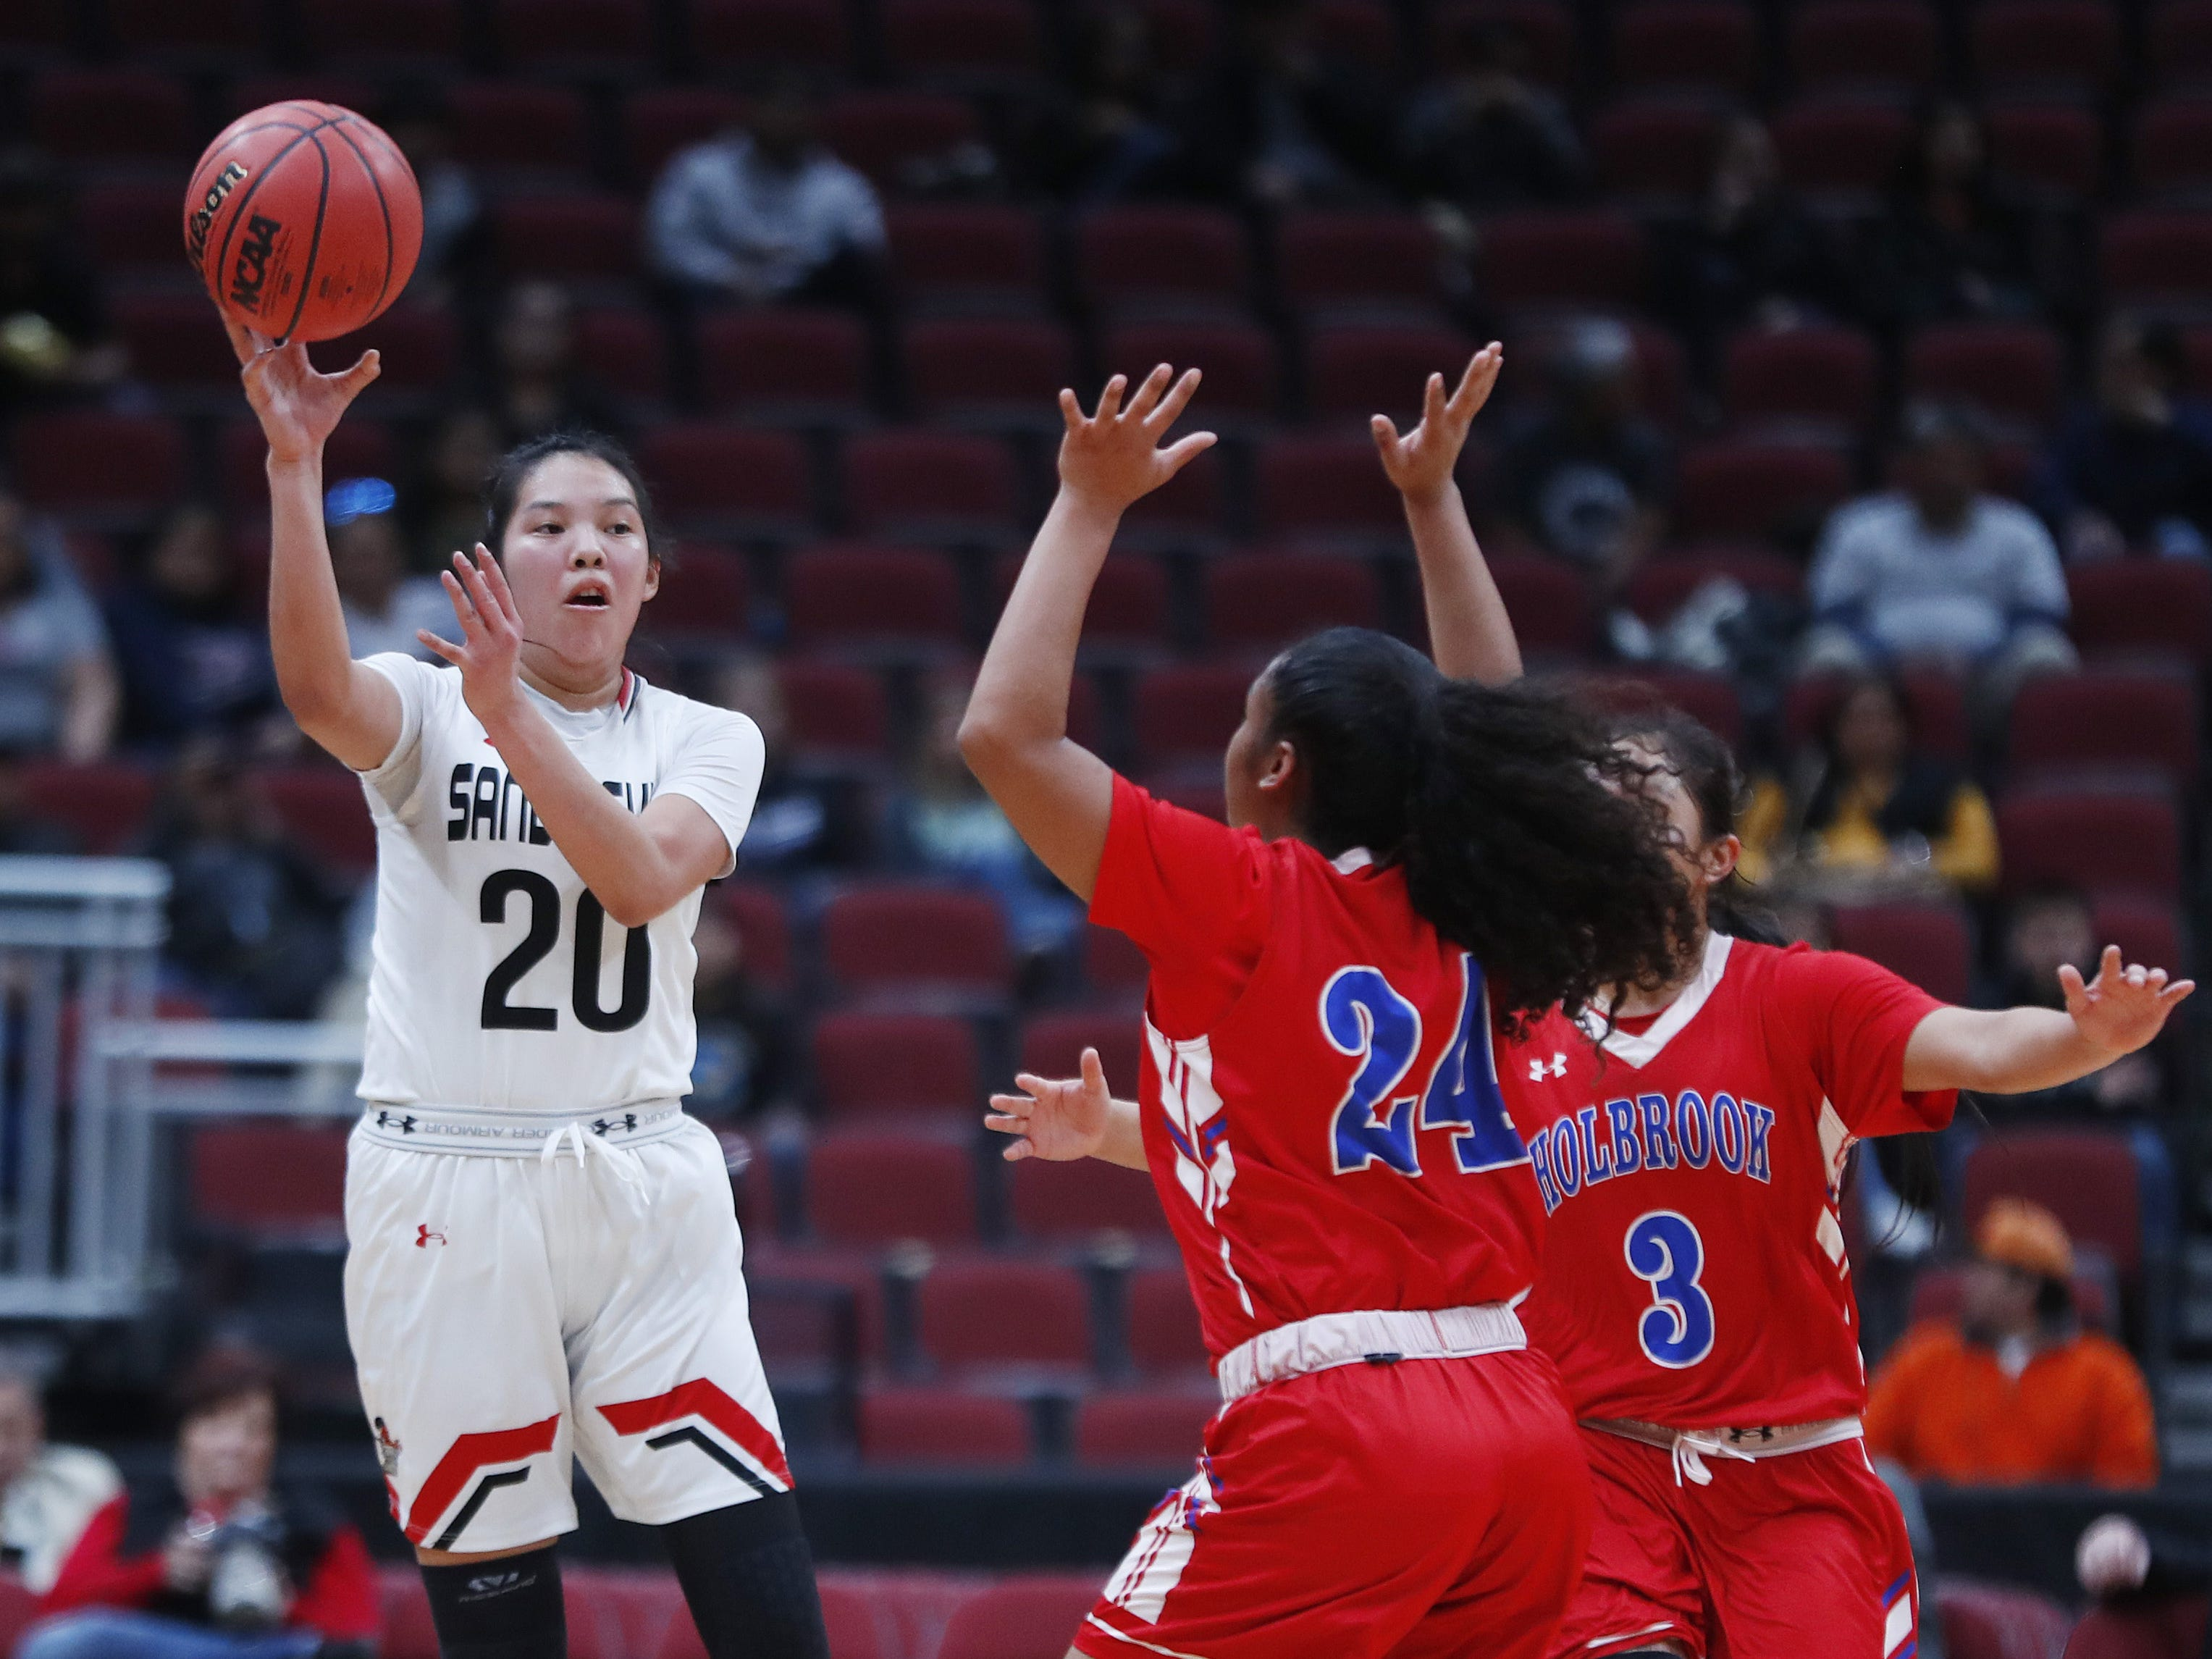 Page's Myka Taliman (20) passes under defensive pressure from Holbrook's Madison Chappell (24) during the first half of the 3A girls basketball state championship at Gila River Arena in Glendale, Ariz. on February 23, 2019.